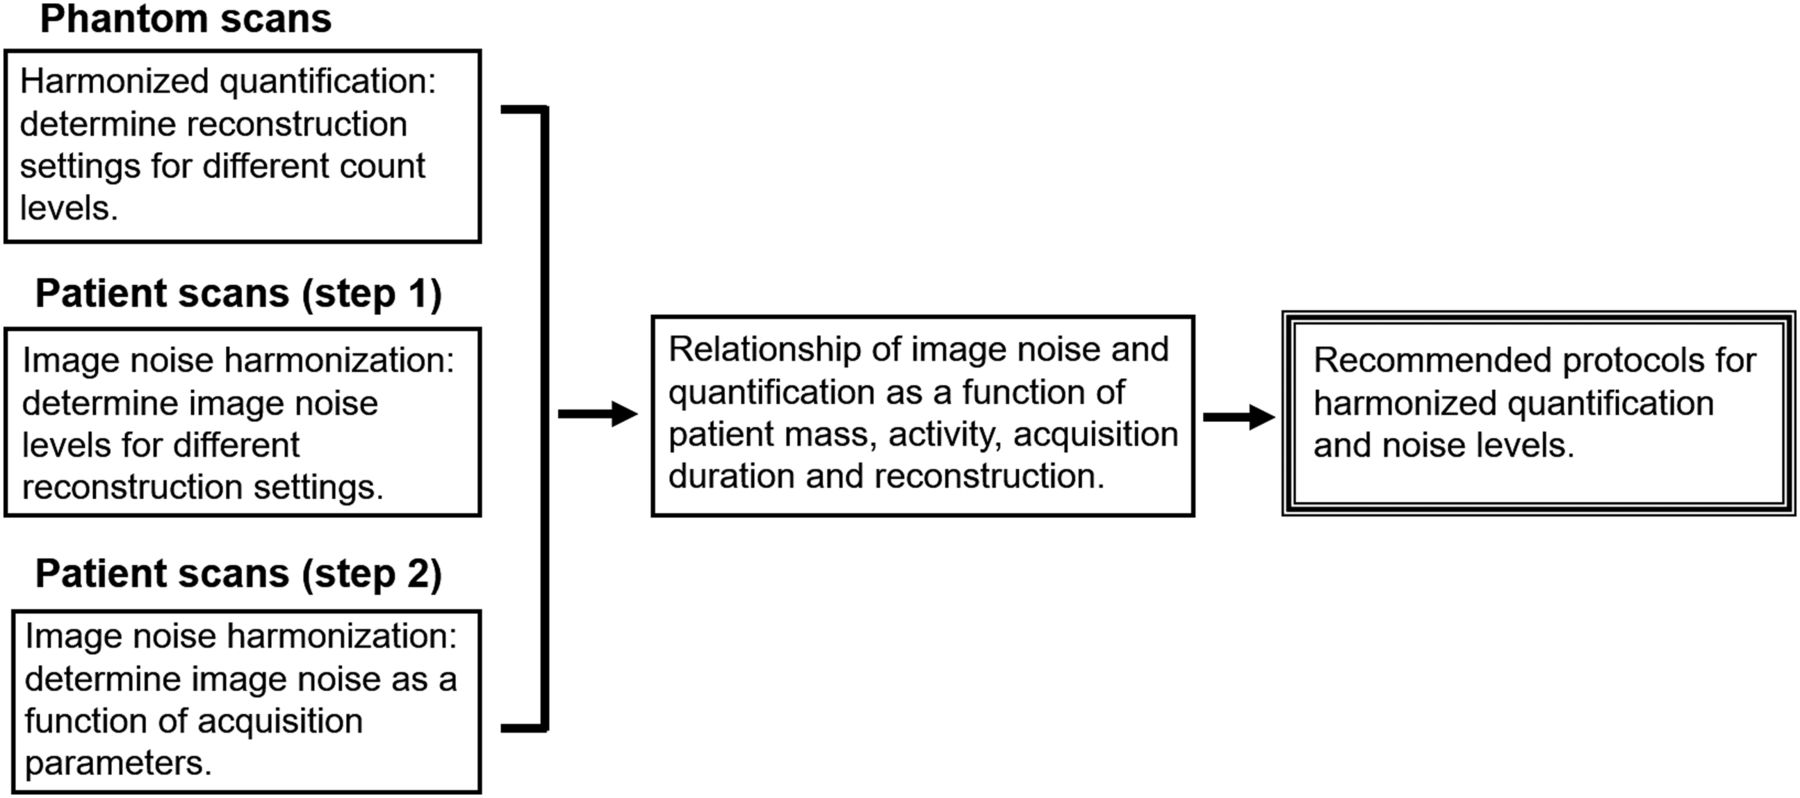 Protocols for Harmonized Quantification and Noise Reduction in Low